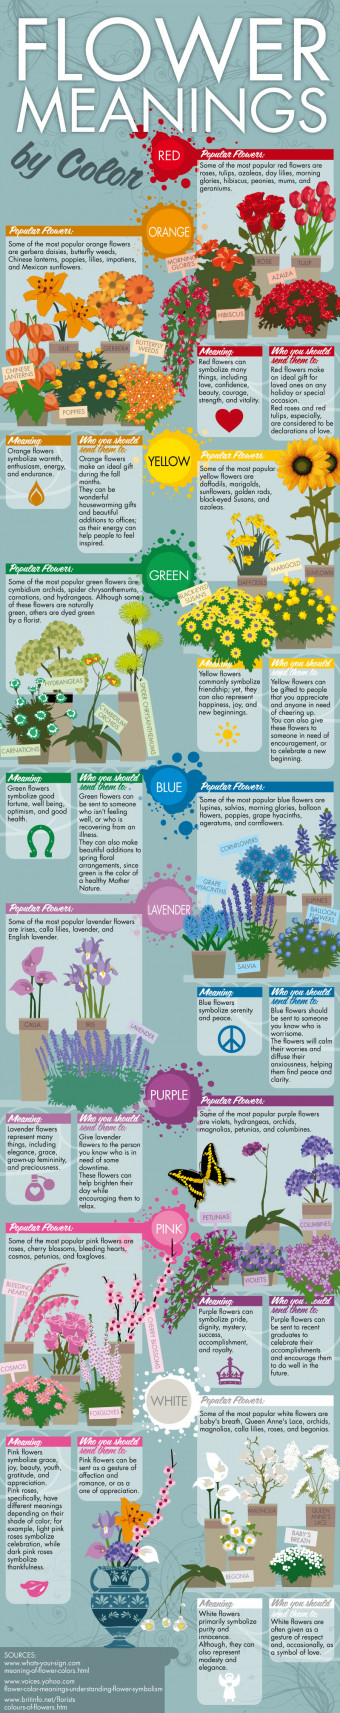 Flower Meanings By Color